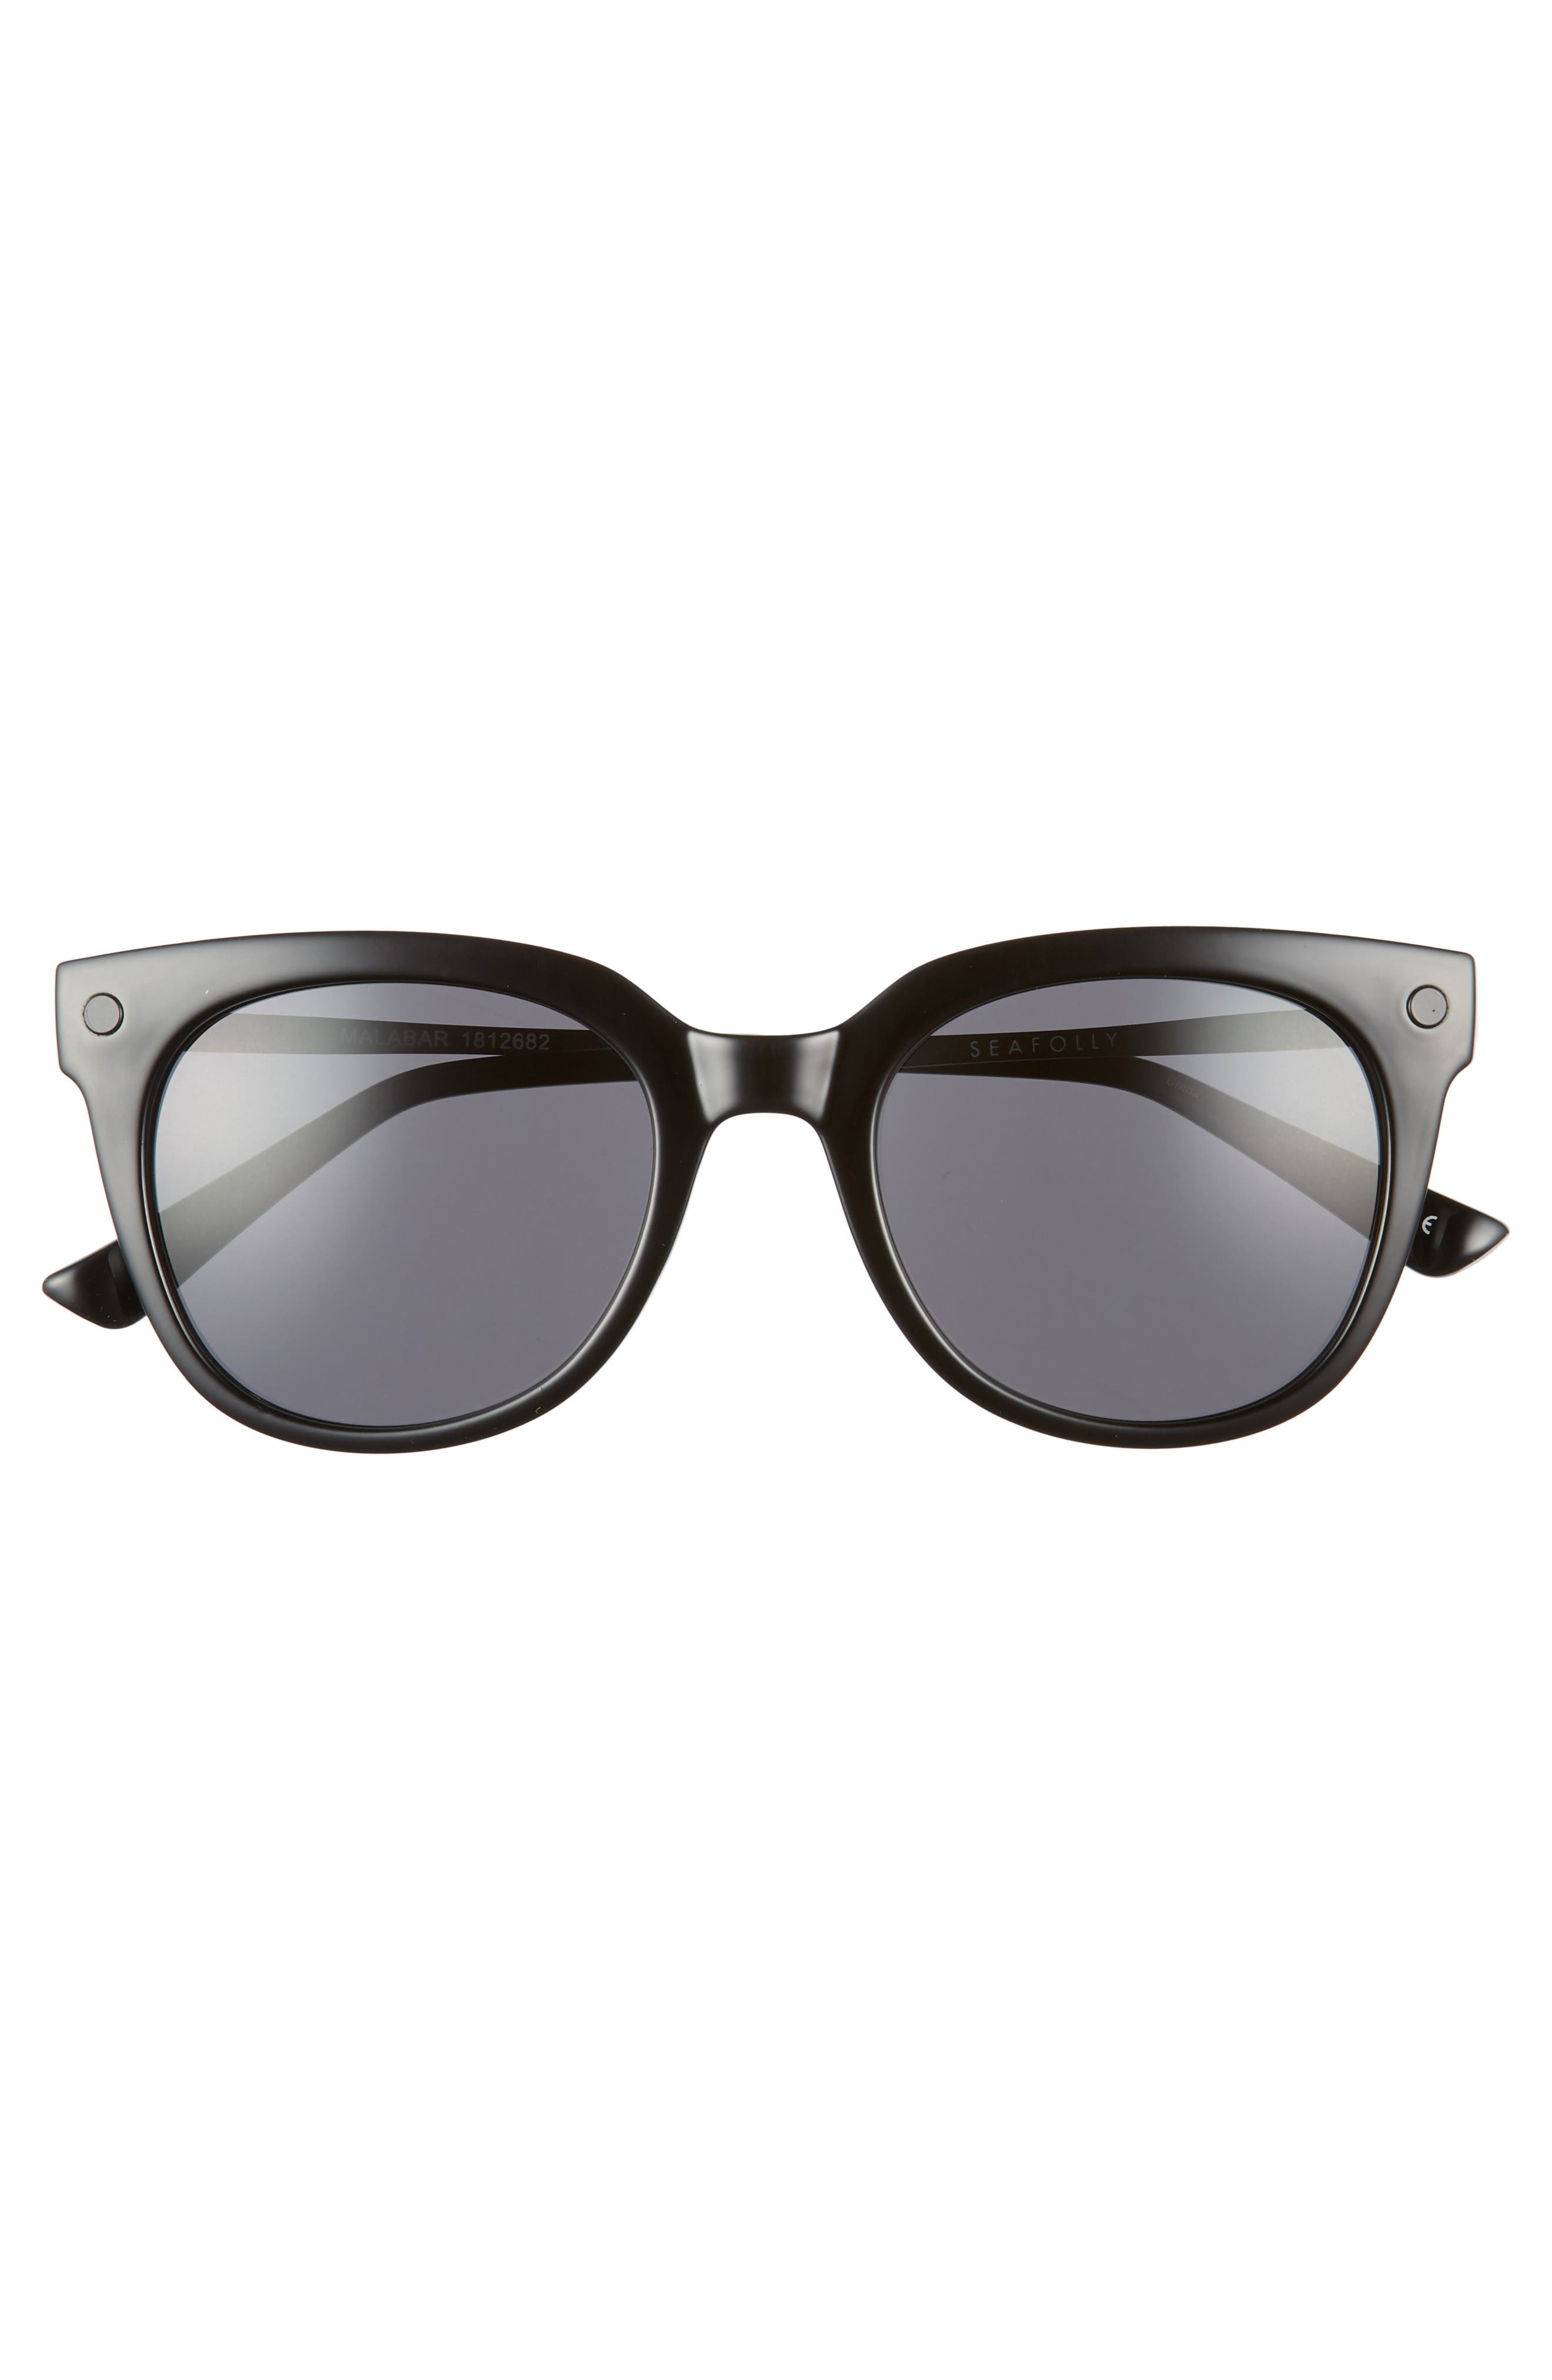 Malabar 52mm Sunglasses,                             Alternate thumbnail 3, color,                             001